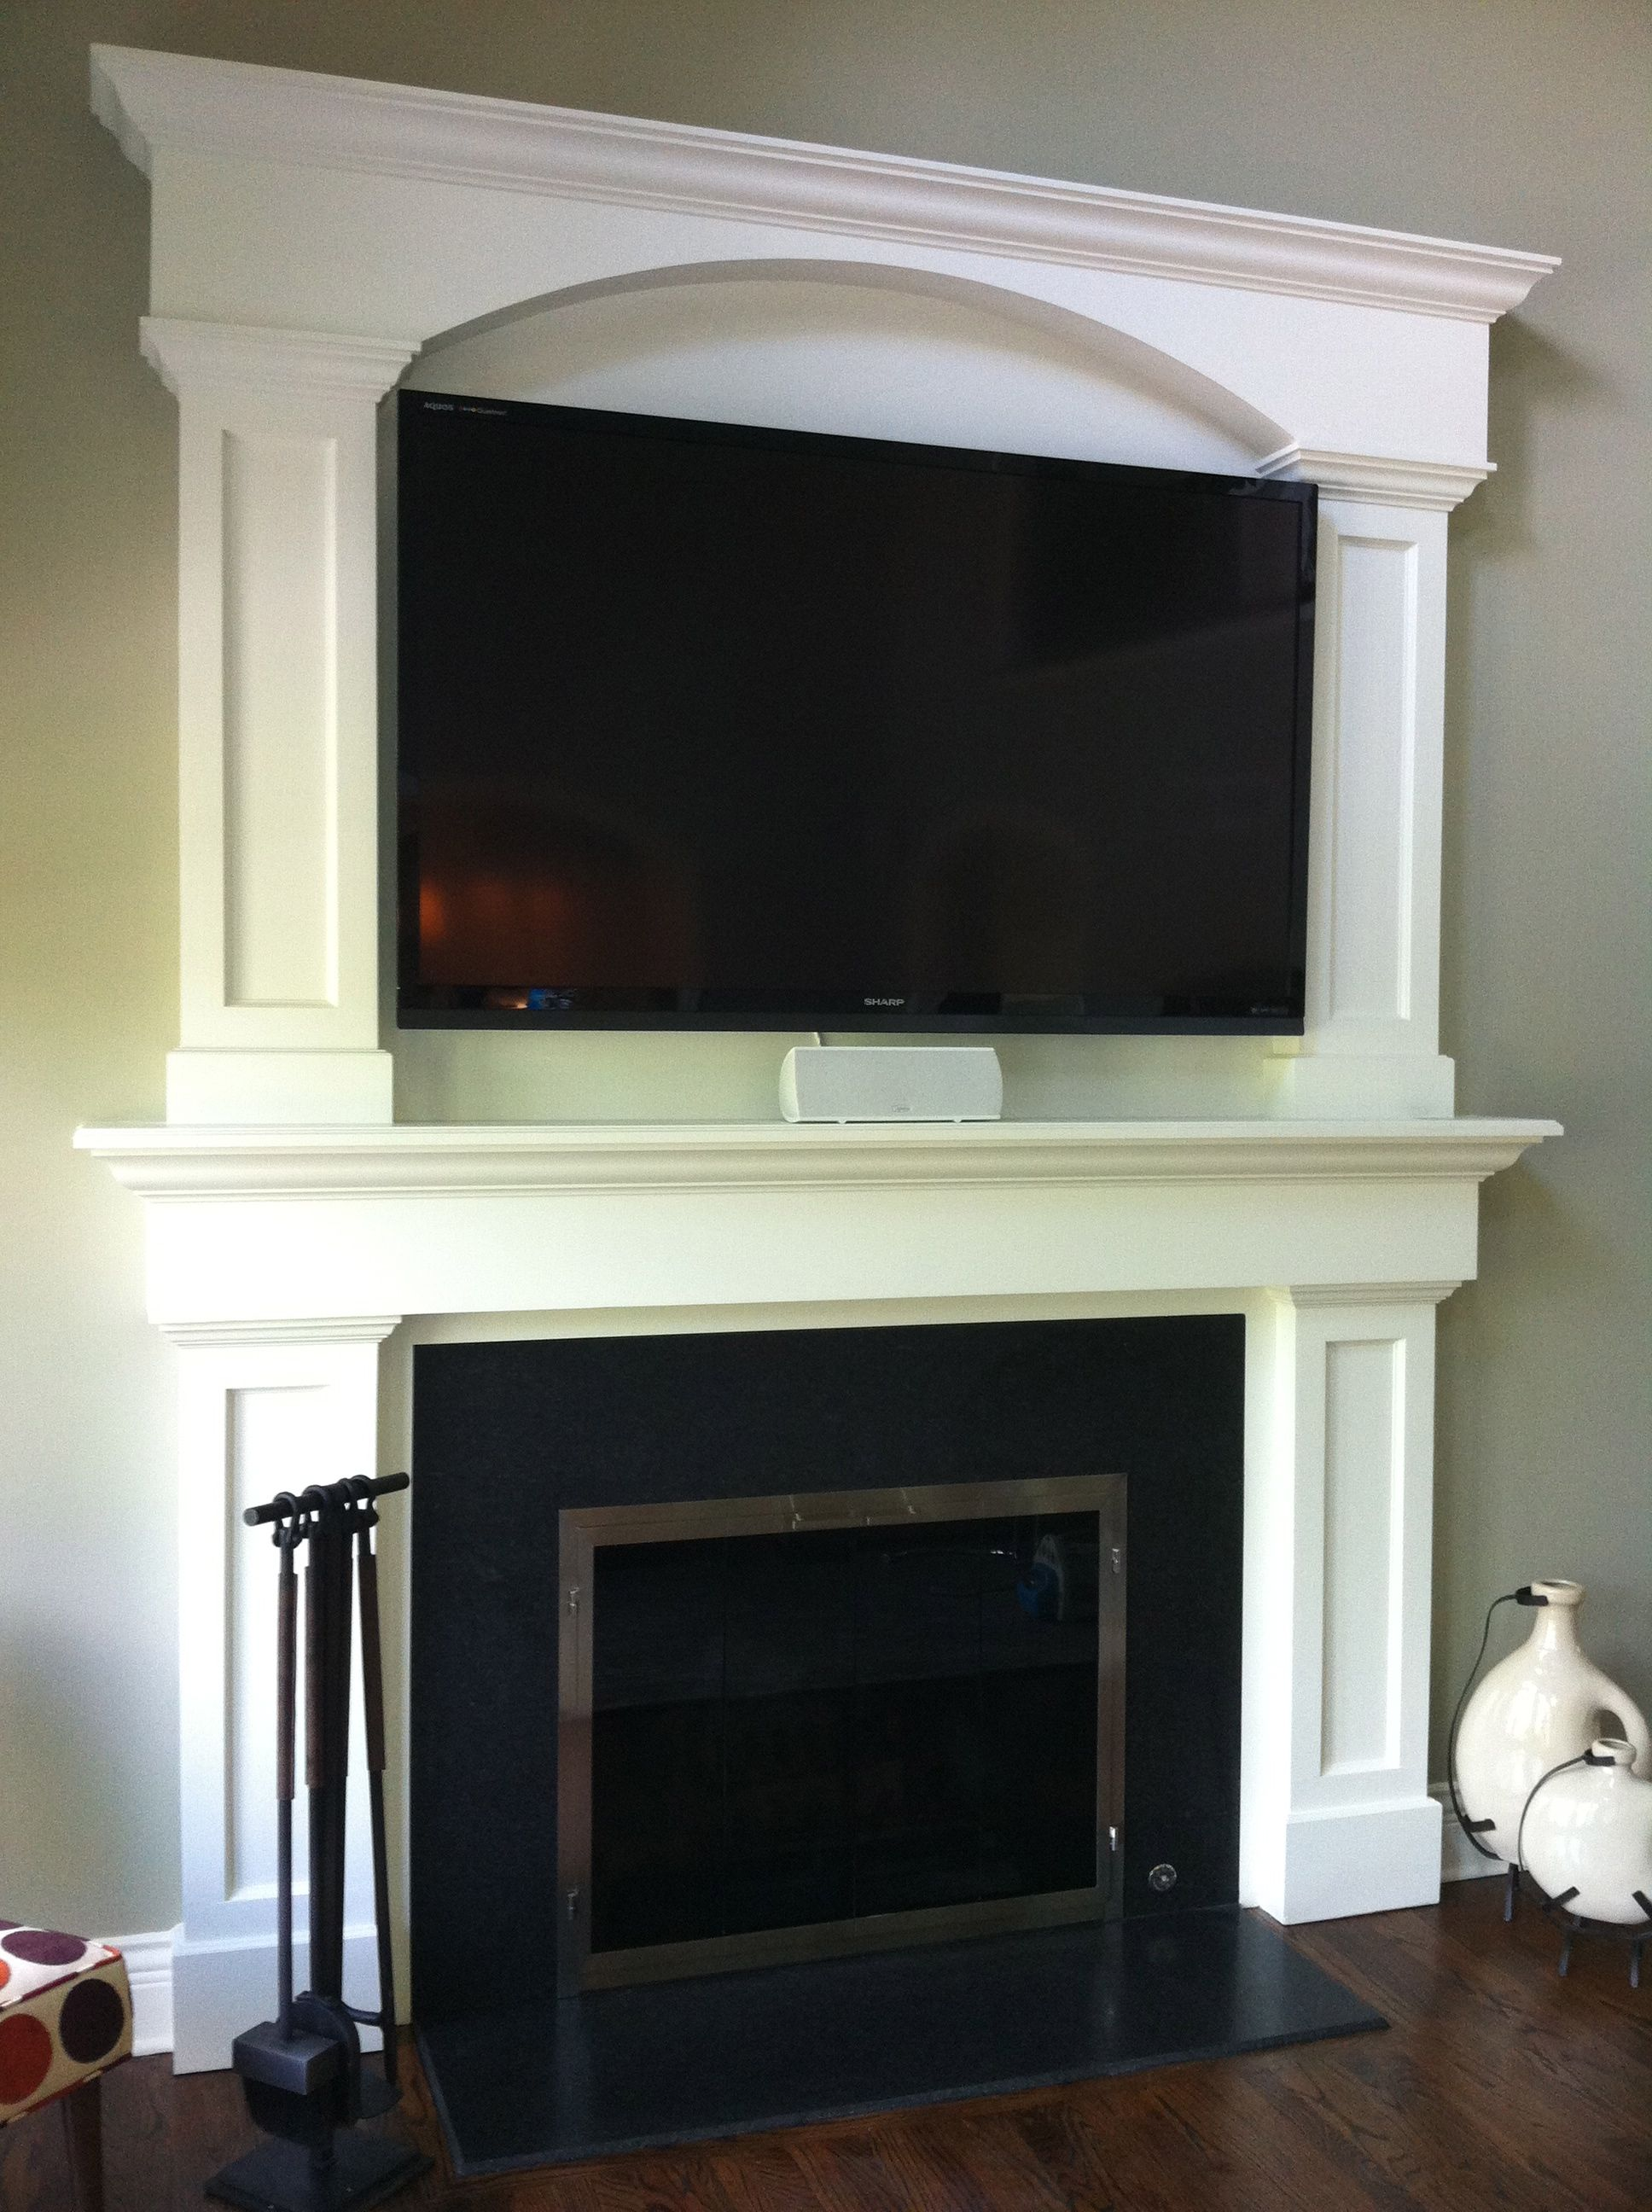 custom fireplace surround tv above fireplace granite face around